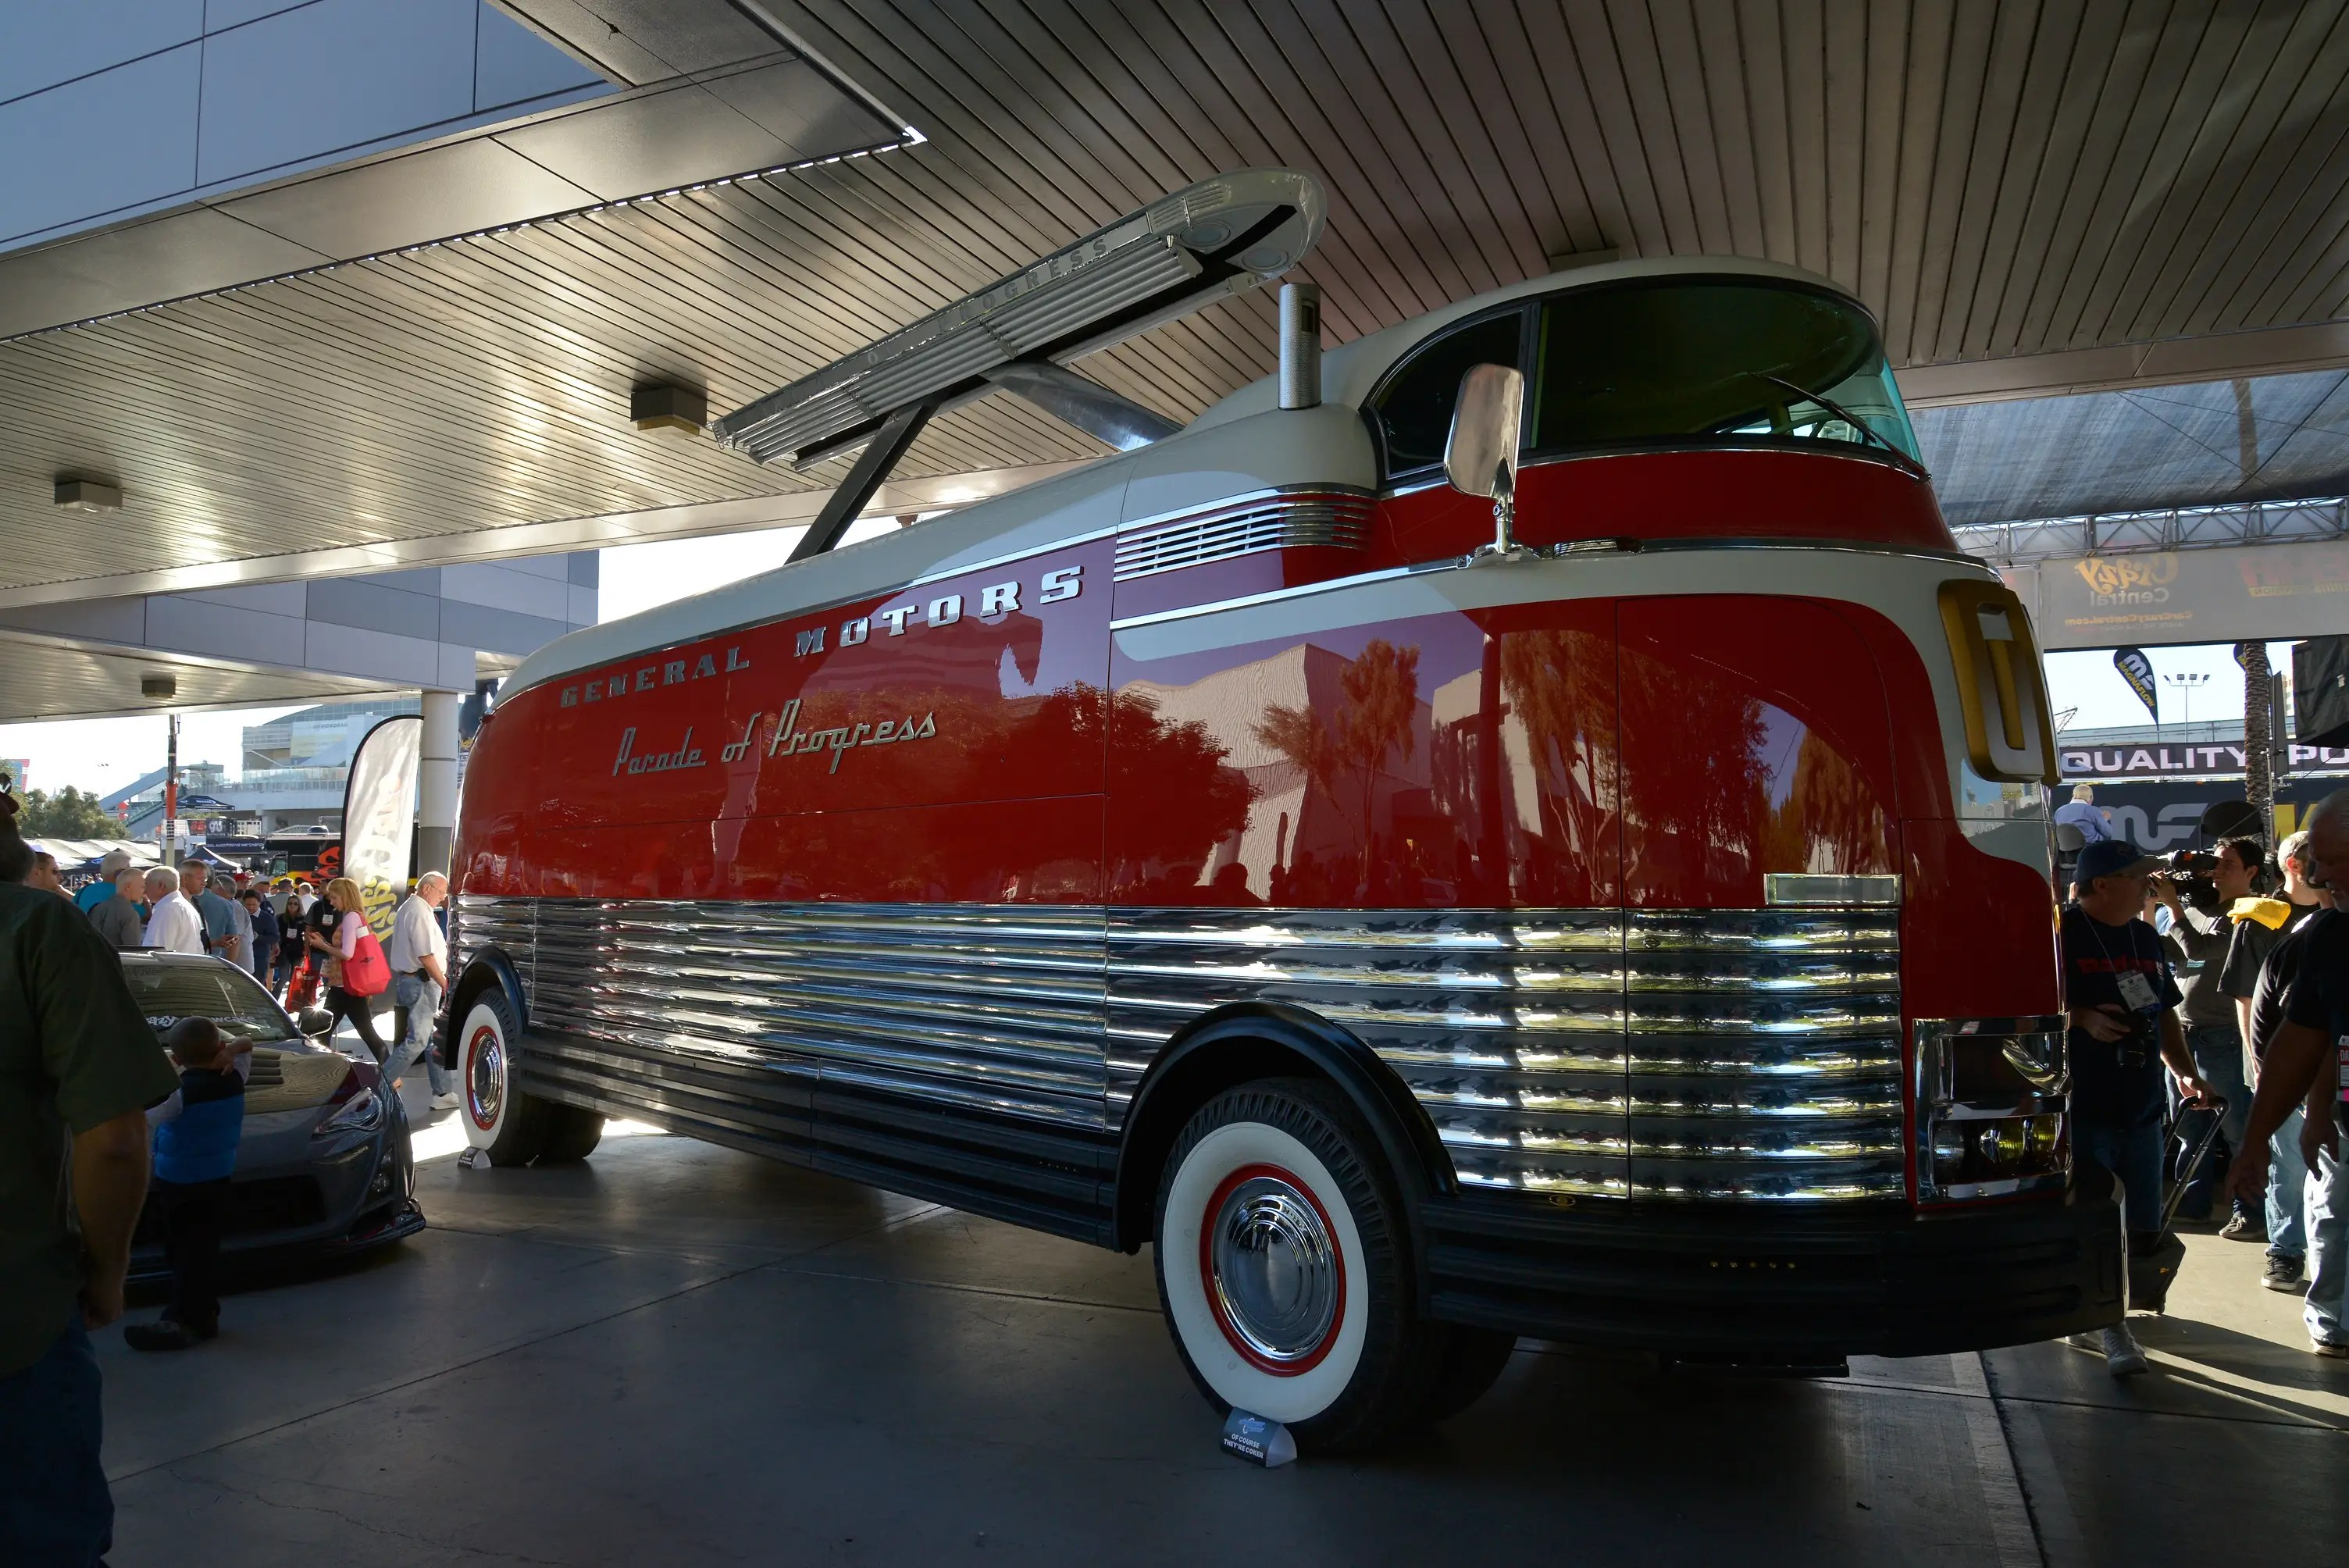 ... and this classy General Motors Futureliner are a reminder that what is old can be new and cool once again.